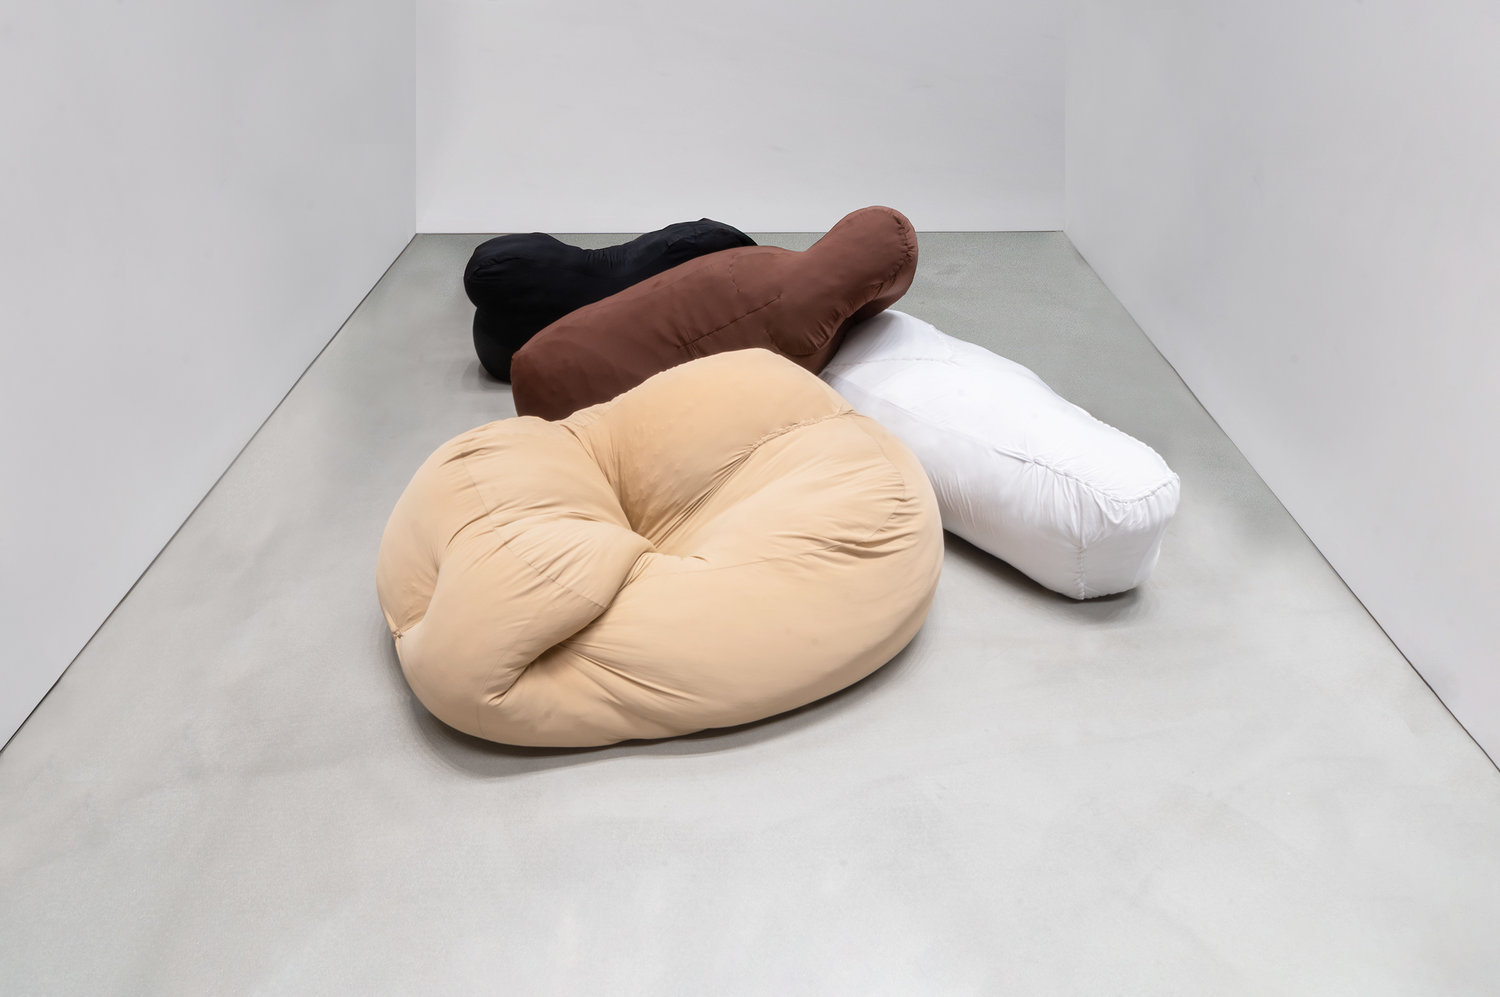 ORGY PILLOWS BODY PARTS IN MIXED SKIN COLORS